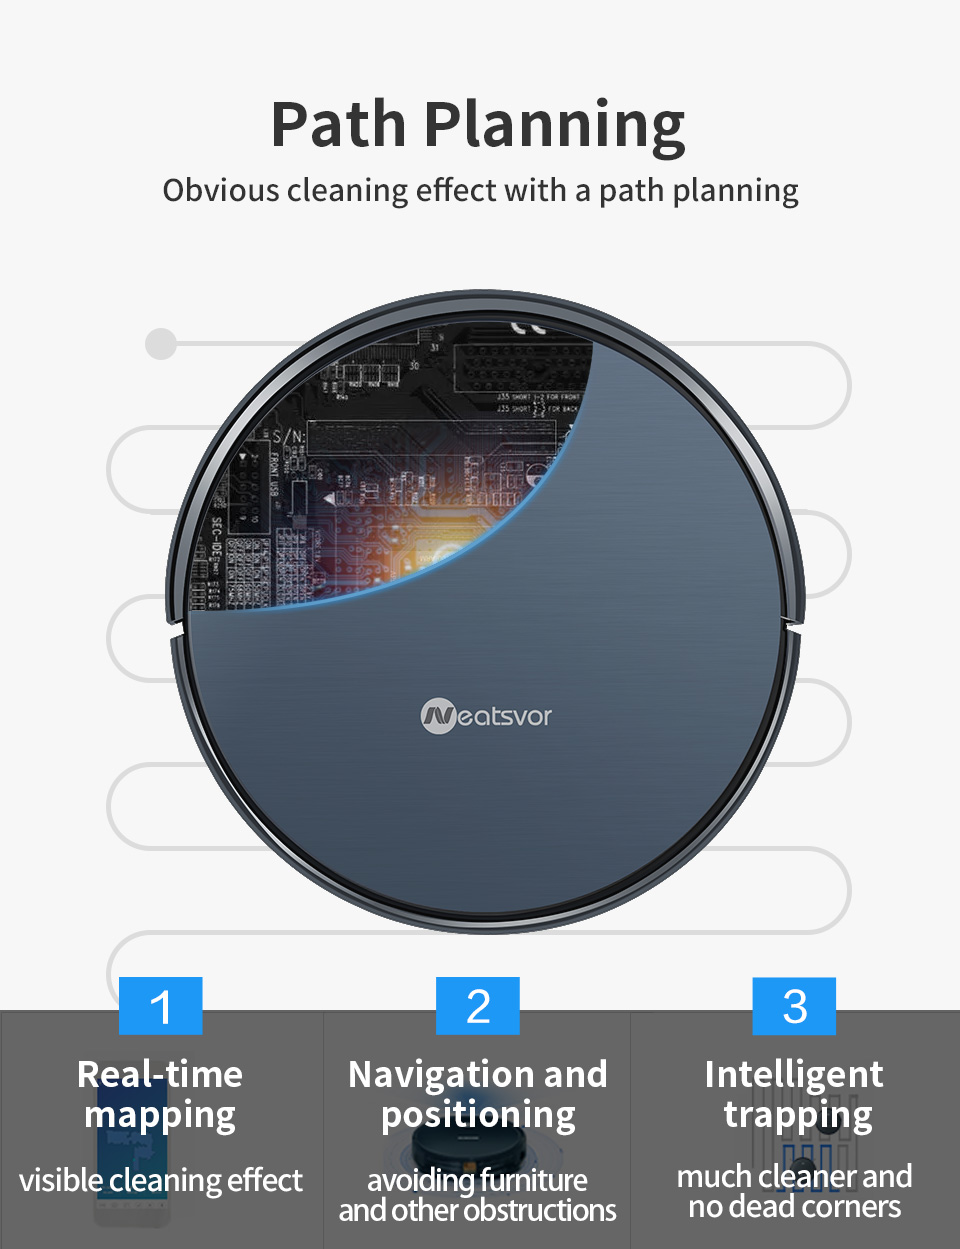 Ha9208c538af147a7885314b55844ac4cP NEATSVOR X500 Robot Vacuum Cleaner 1800PA Poweful Suction 3in1 pet hair home dry wet mopping cleaning robot Auto Charge vacuum